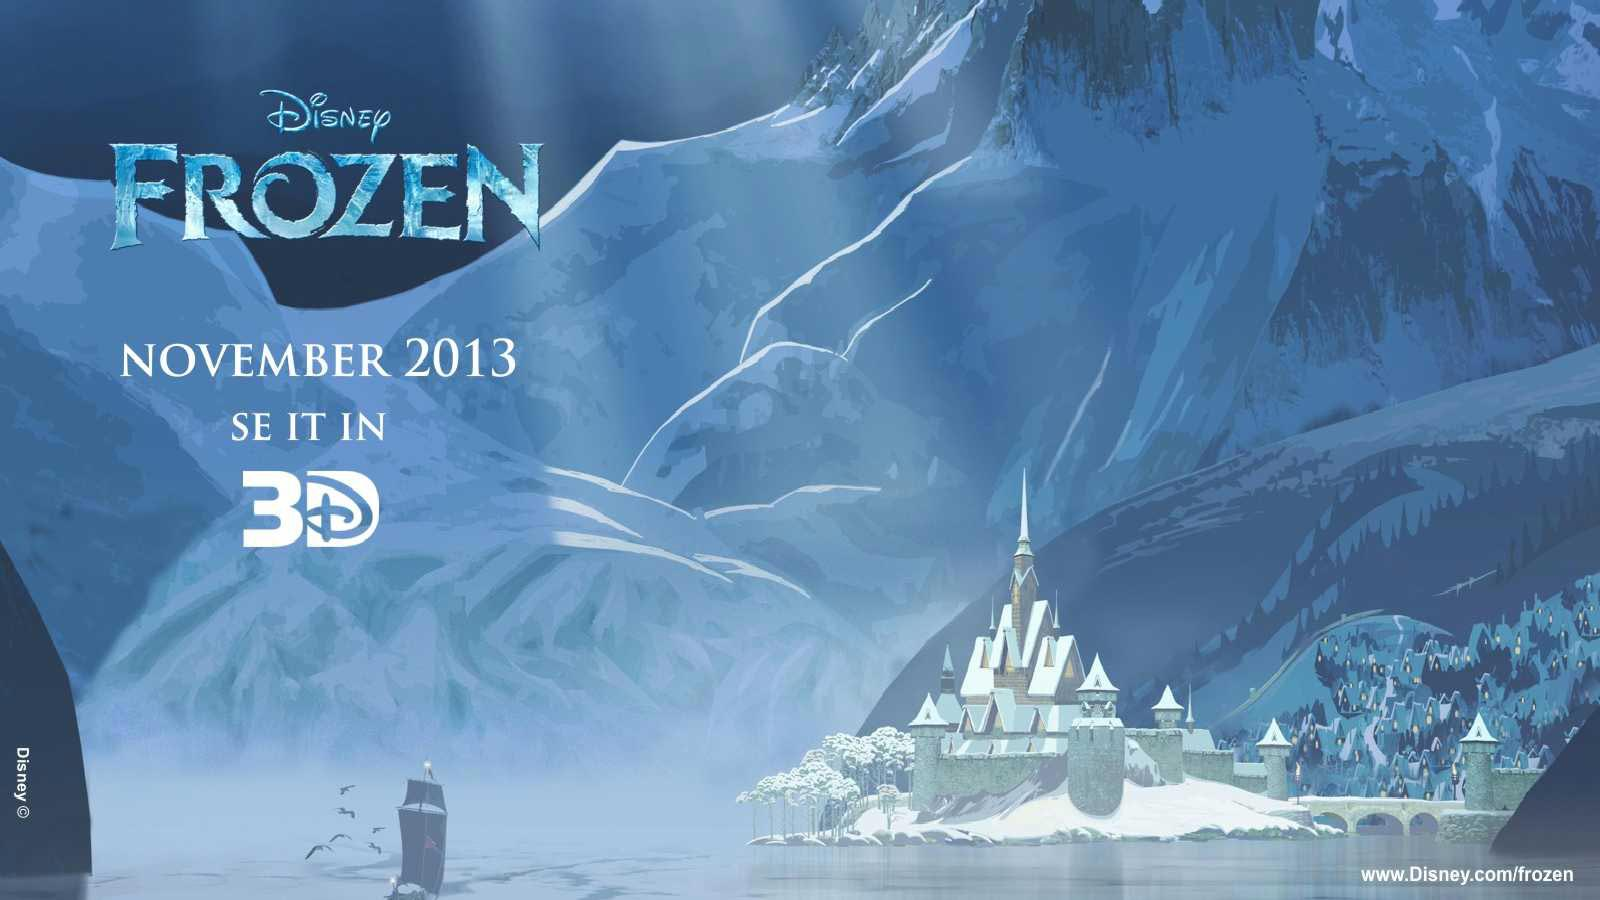 Disney Frozen Wallpapers Desktop Backgrounds HD Frozen Movie 1600x900